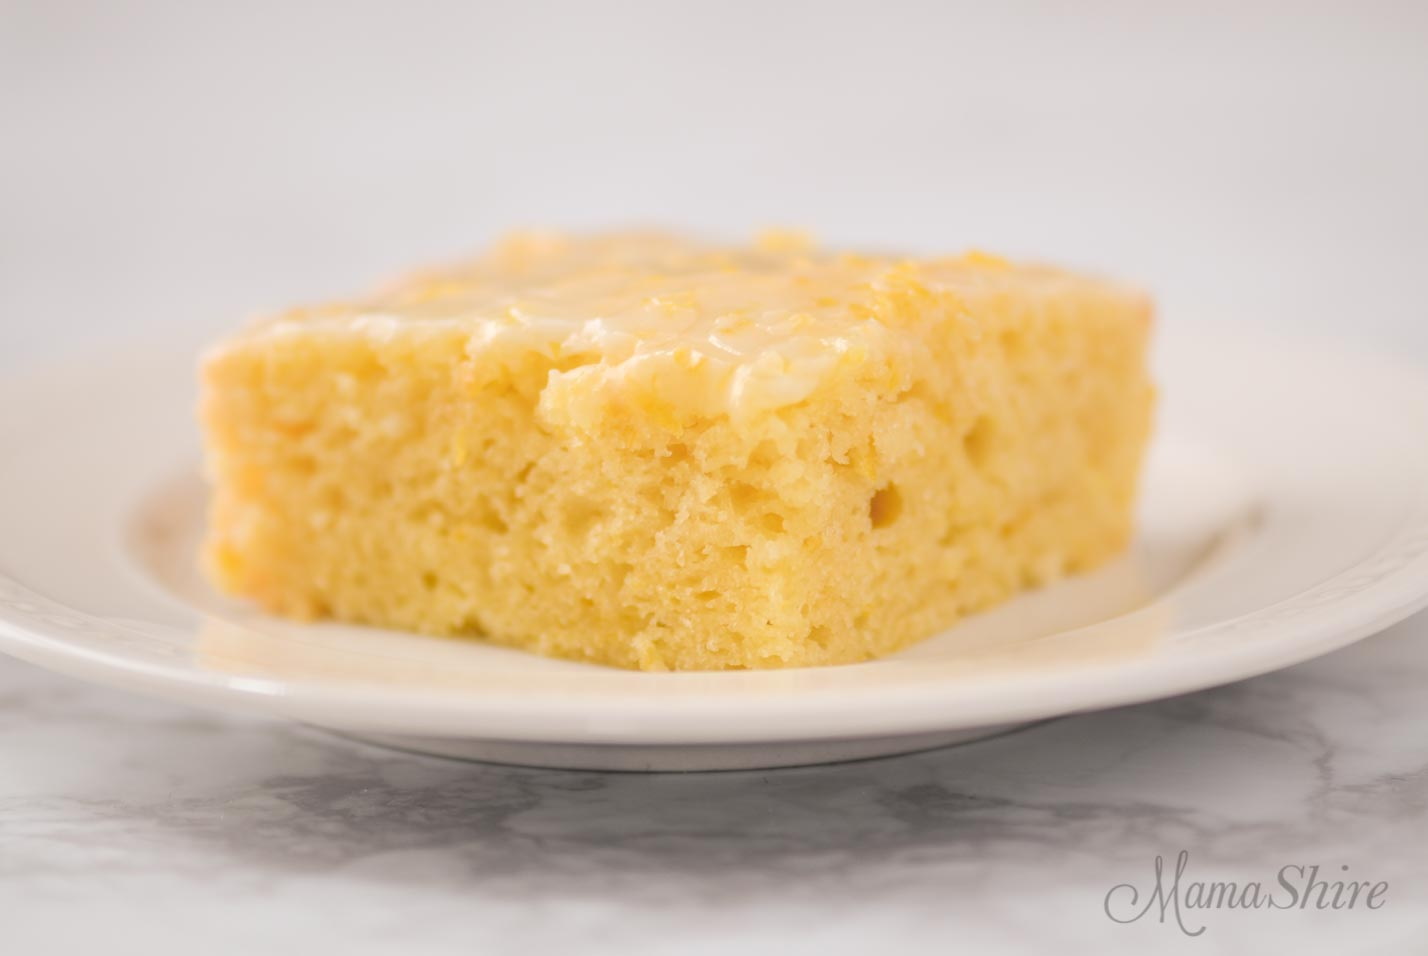 Lemon brownie made from a gluten-free recipe